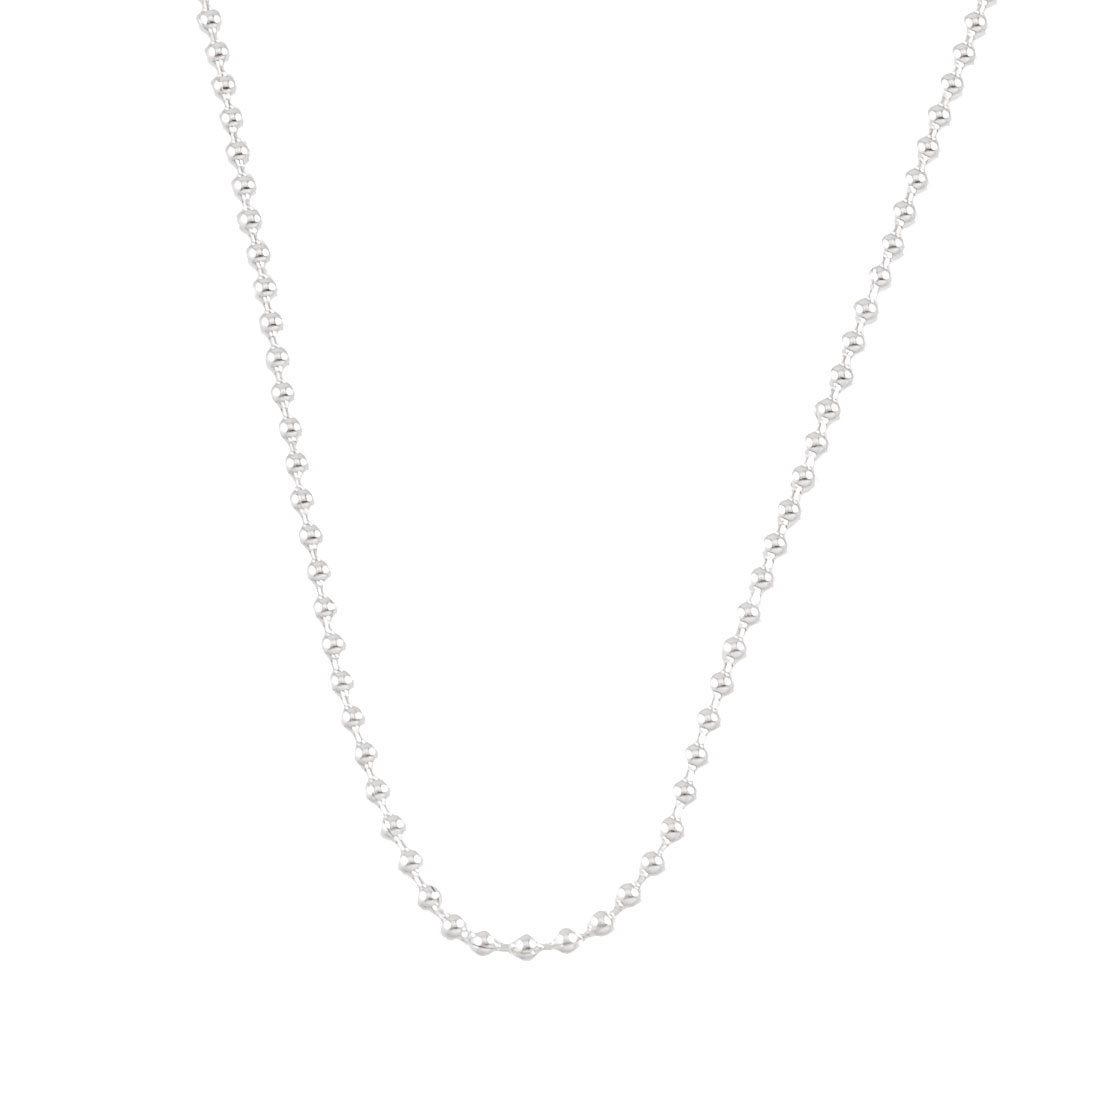 "Women Ladies Silver Tone 24"" Girth Metal Bead Chain Necklace"